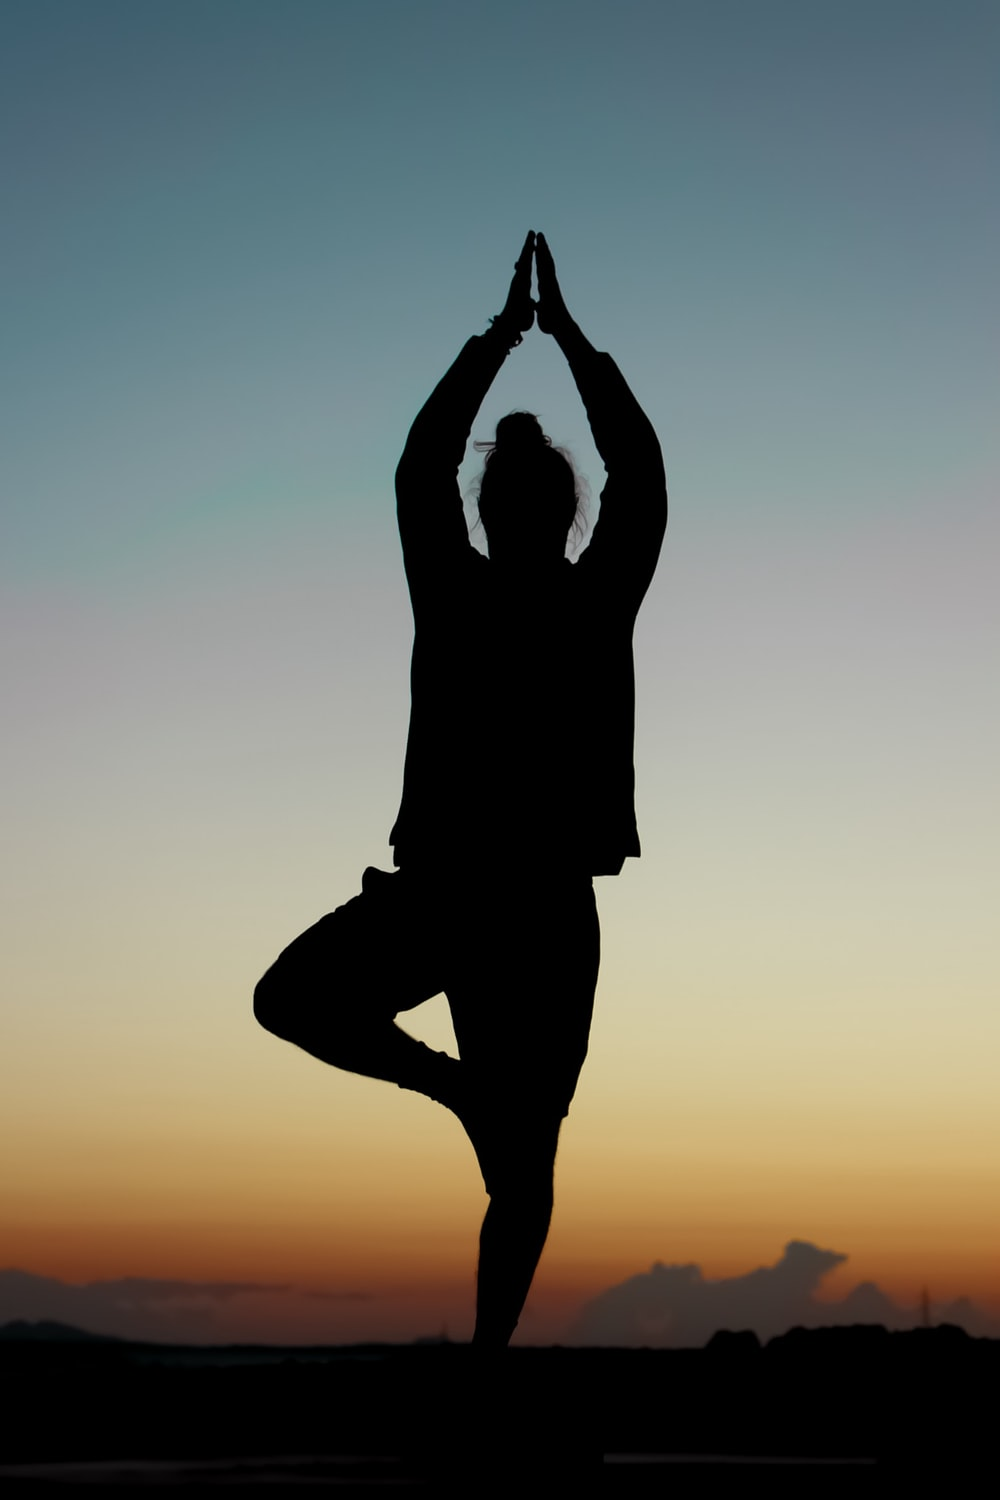 silhouette of person performing yoga